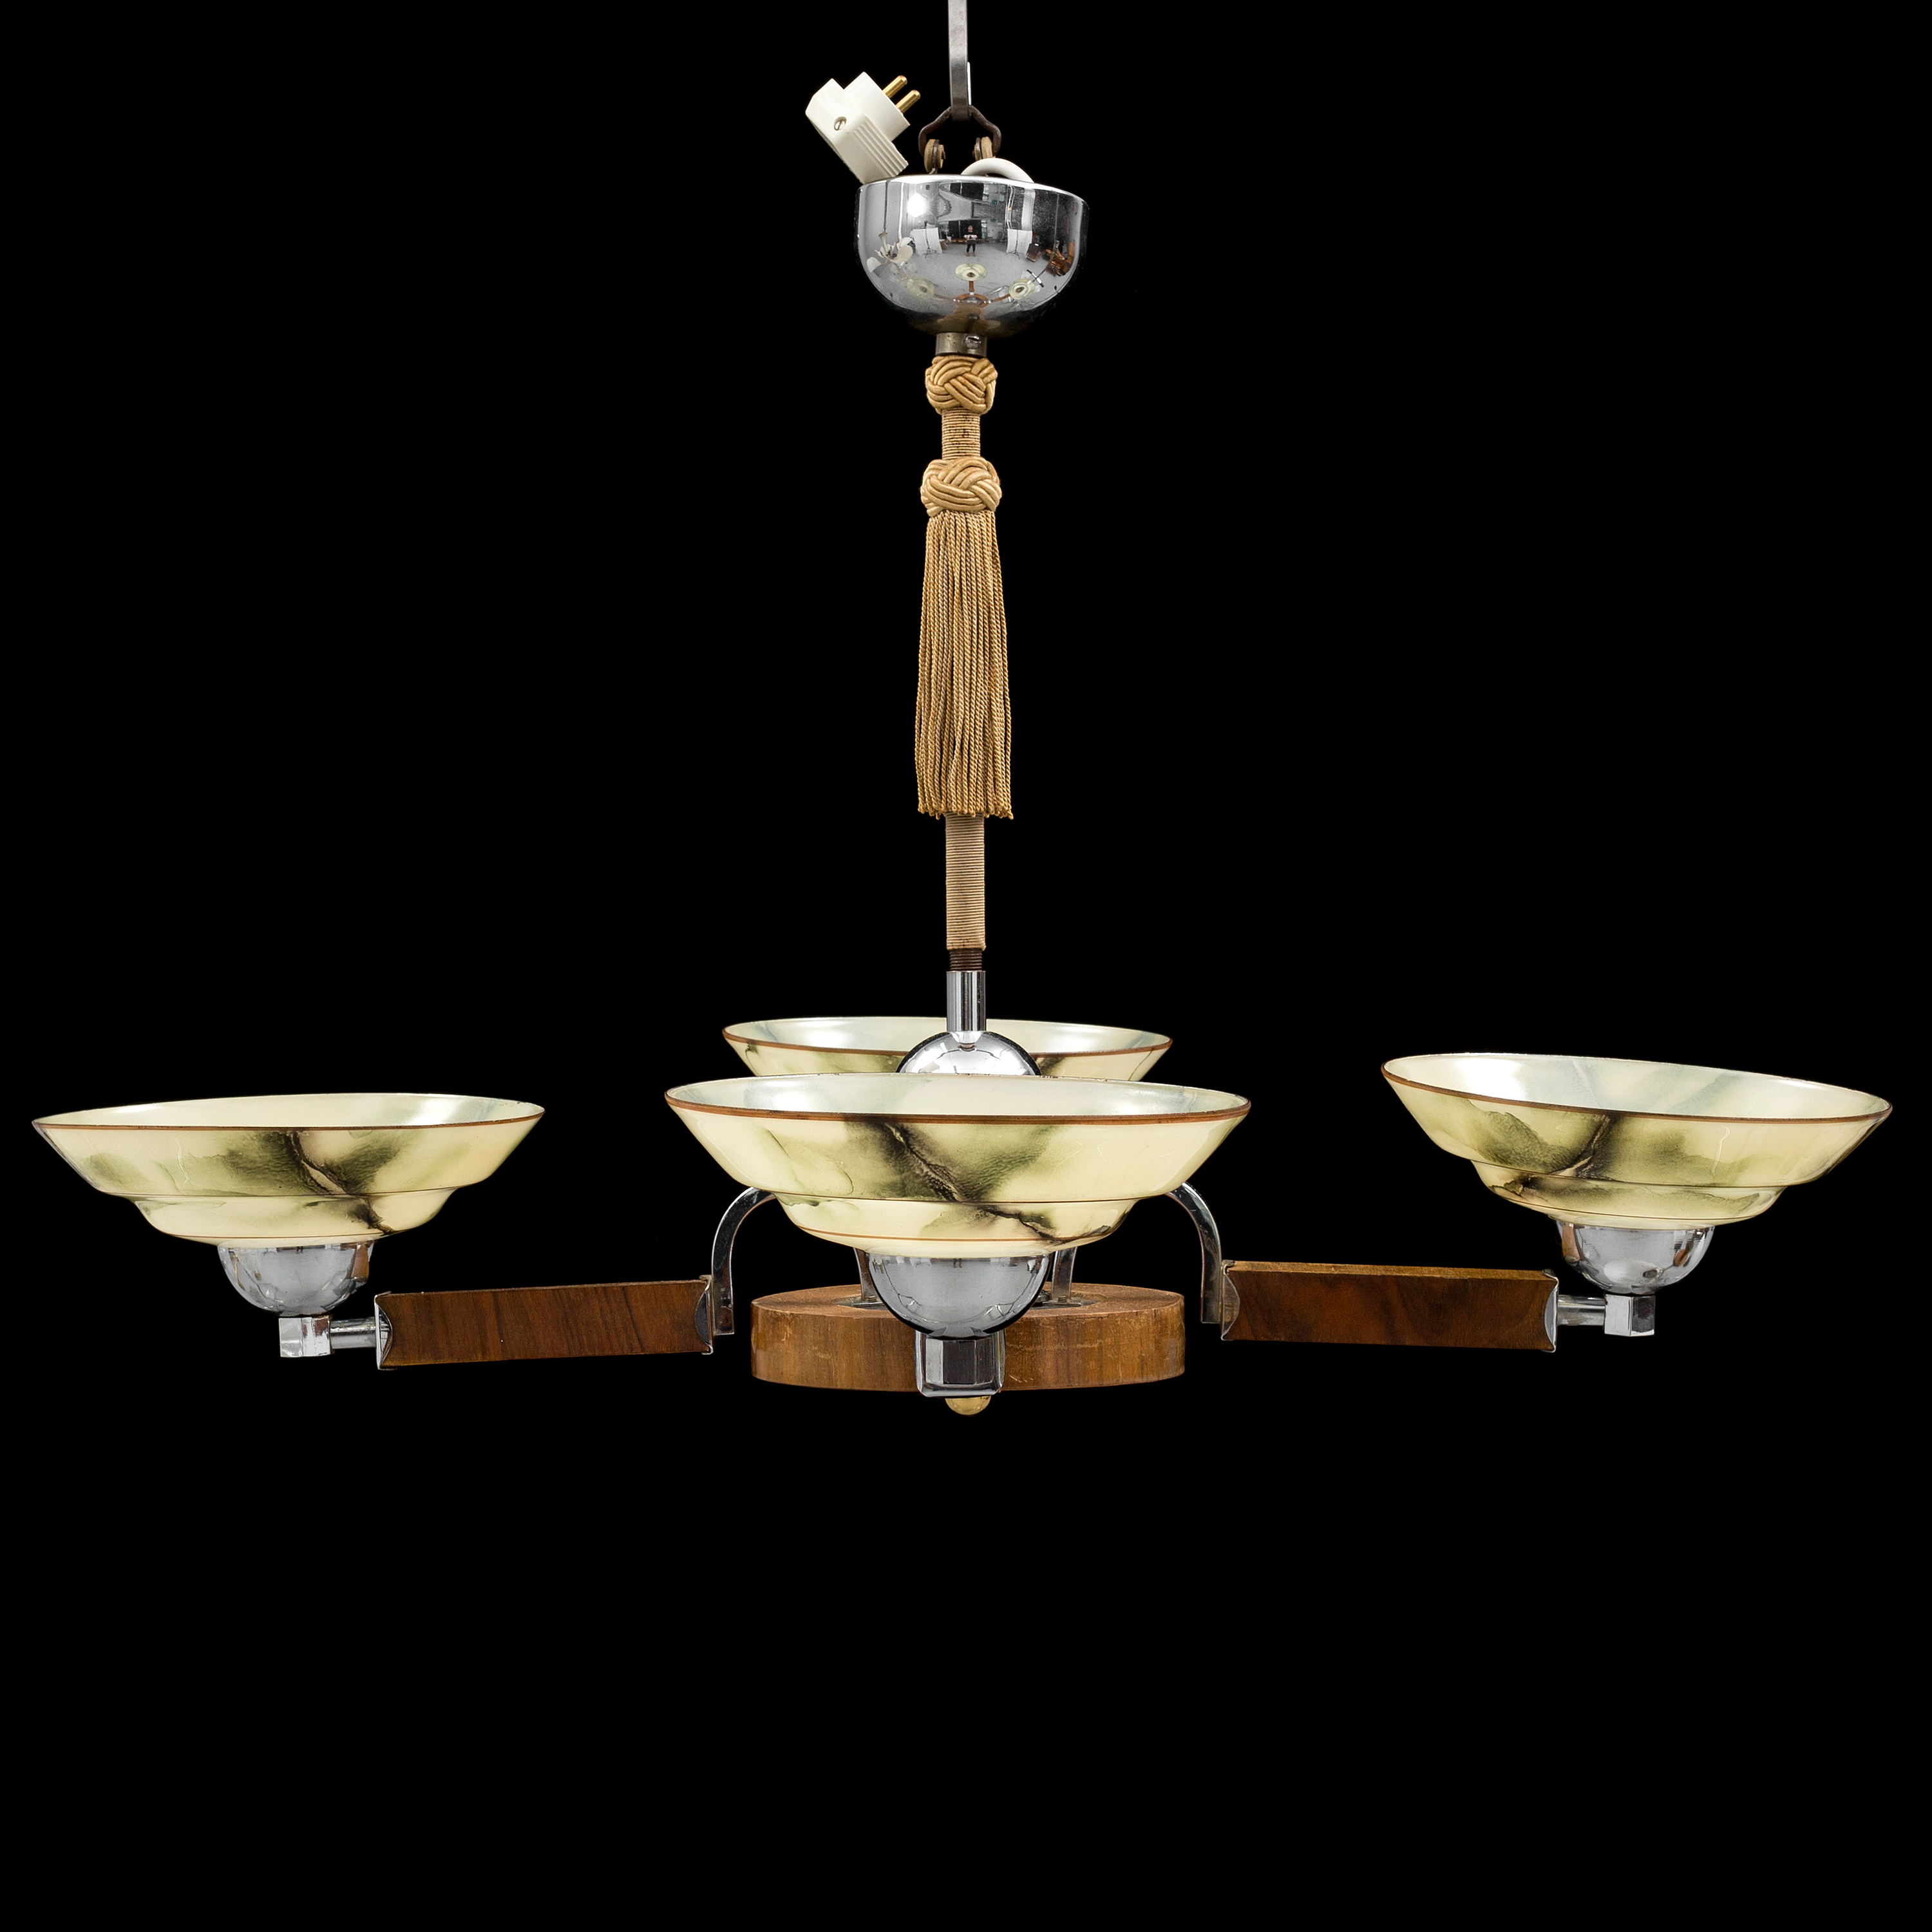 deco frosted ceiling items art lights lighting with img modernism geometric light ceilings french glass